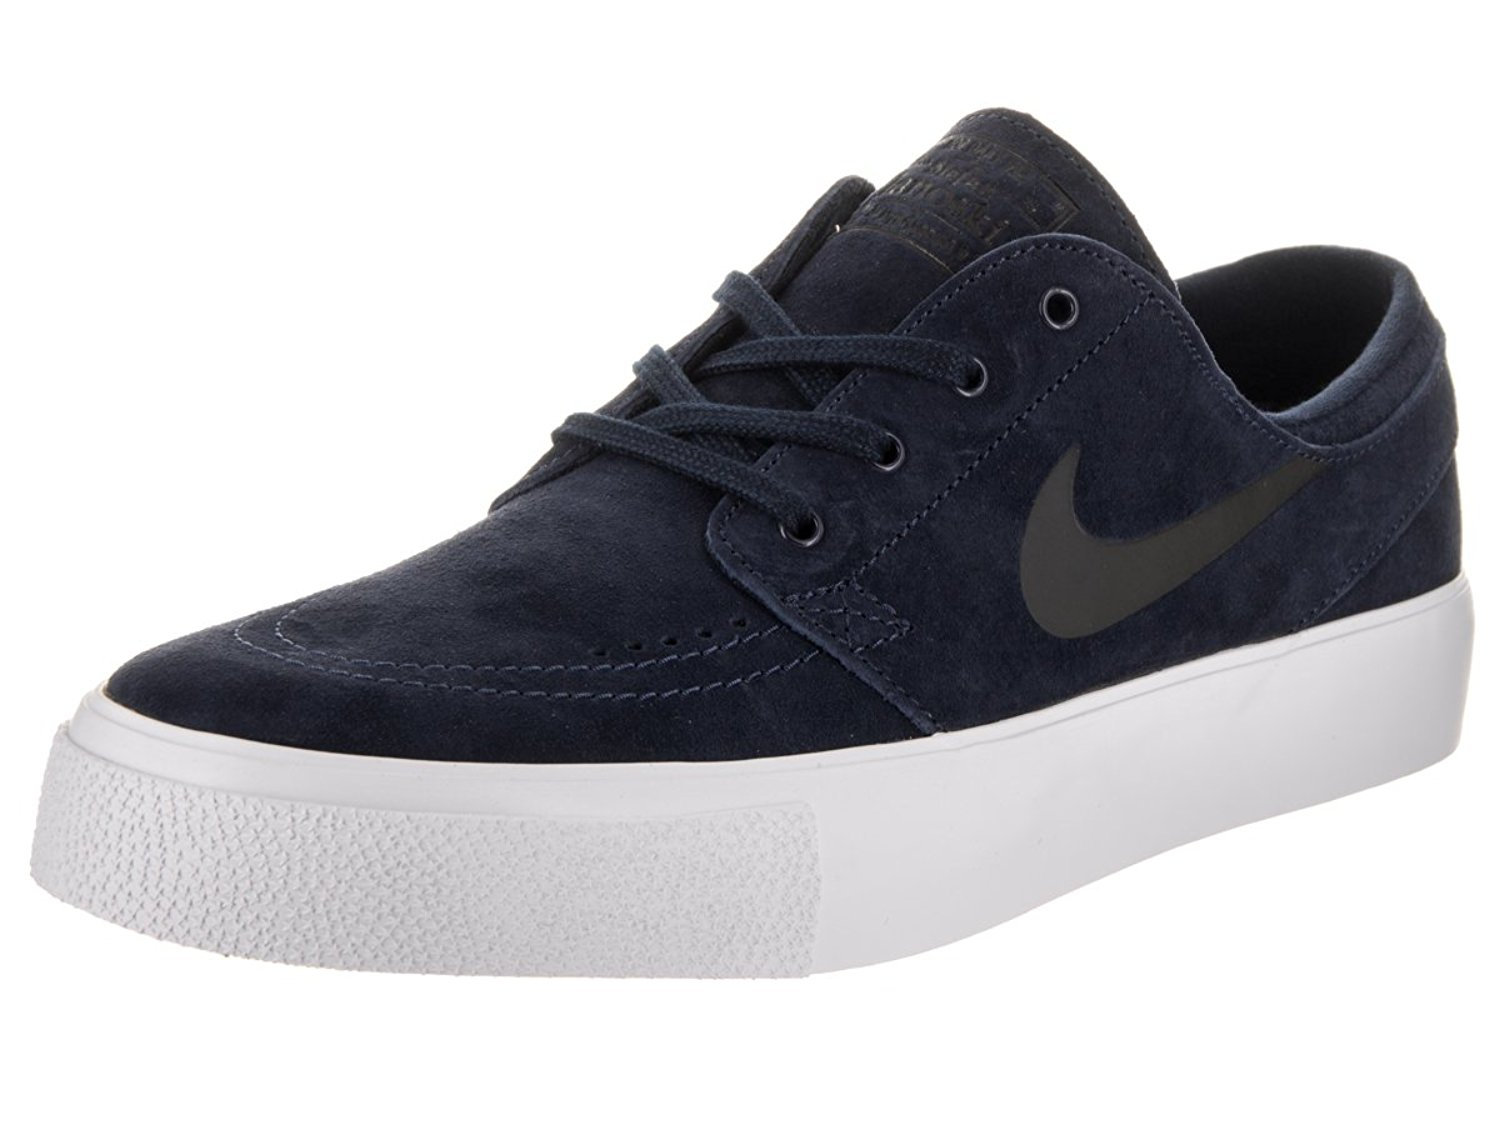 outlet store d582f 00822 Get Quotations · Nike Mens SB Zoom Stefan Janoski HT Skate Shoe